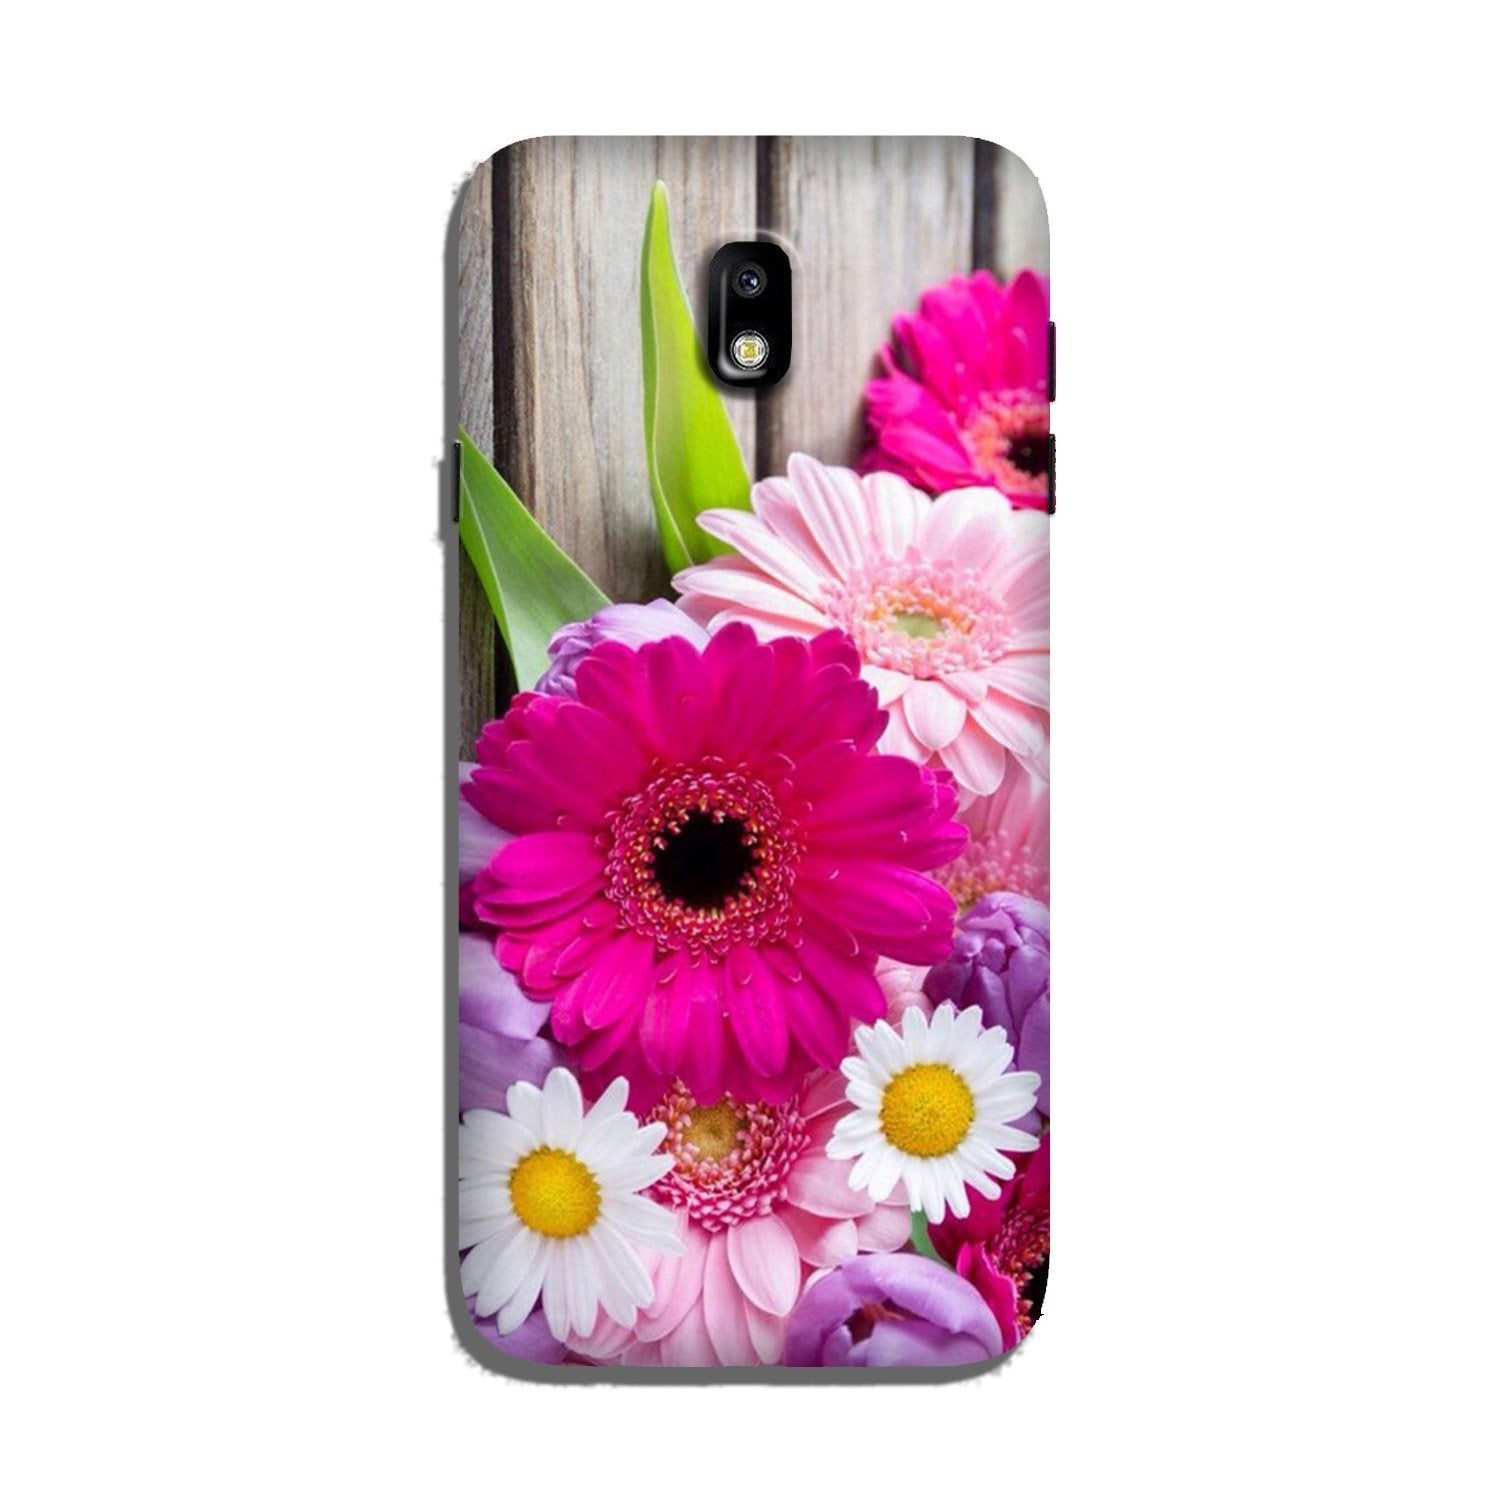 Coloful Daisy2 Case for Galaxy J7 Pro